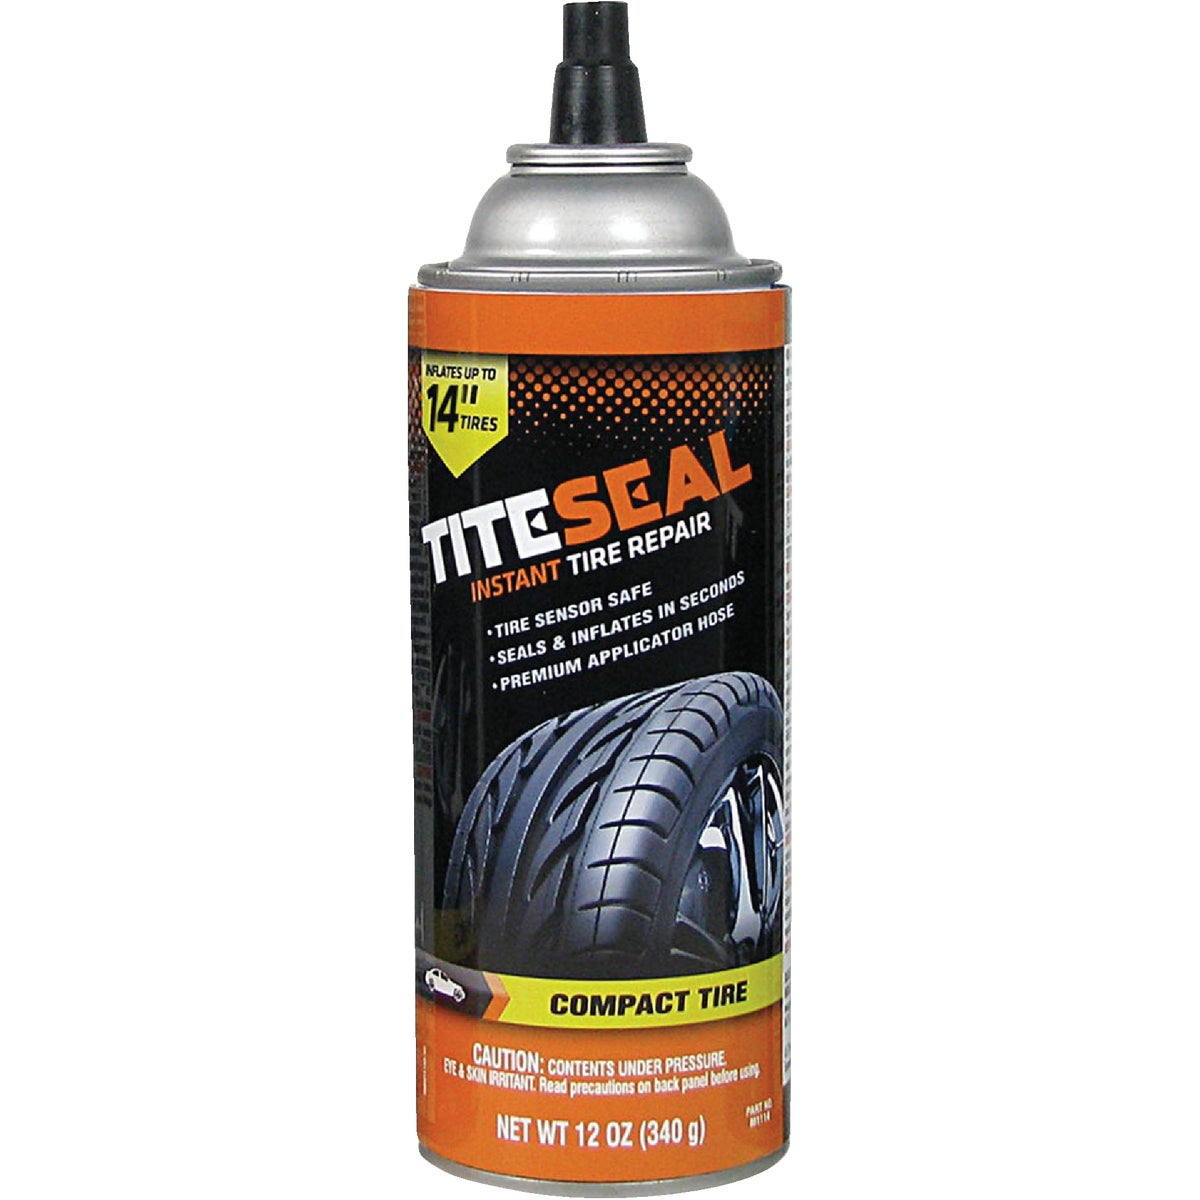 TIRE PUNCTURE SEAL